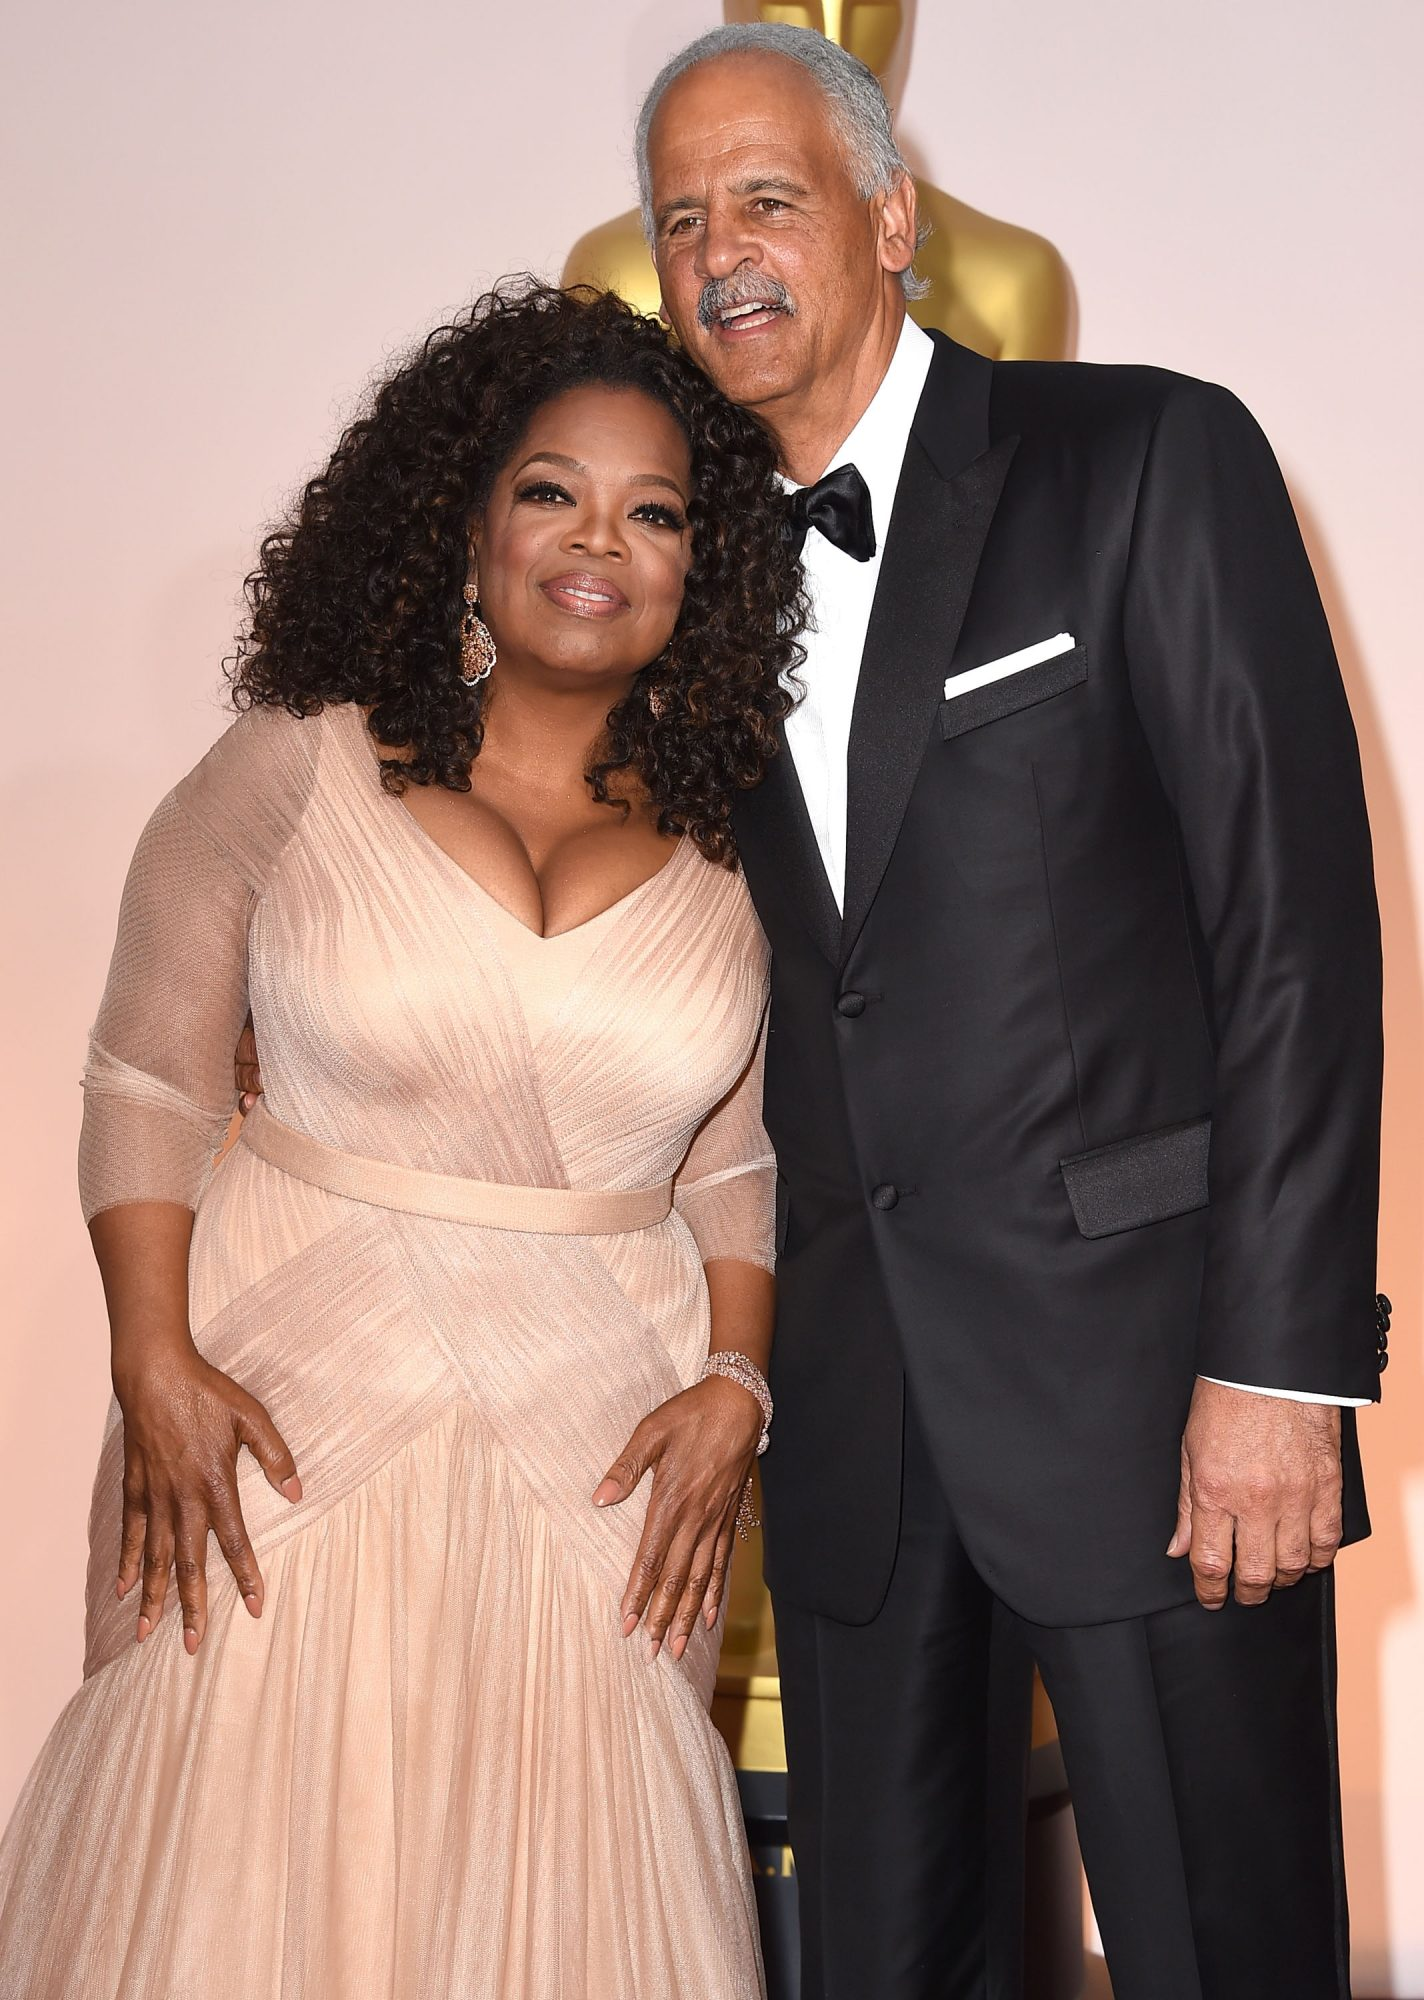 Oprah's Longtime Partner Stedman Revealed the Secret to Their Lasting Love